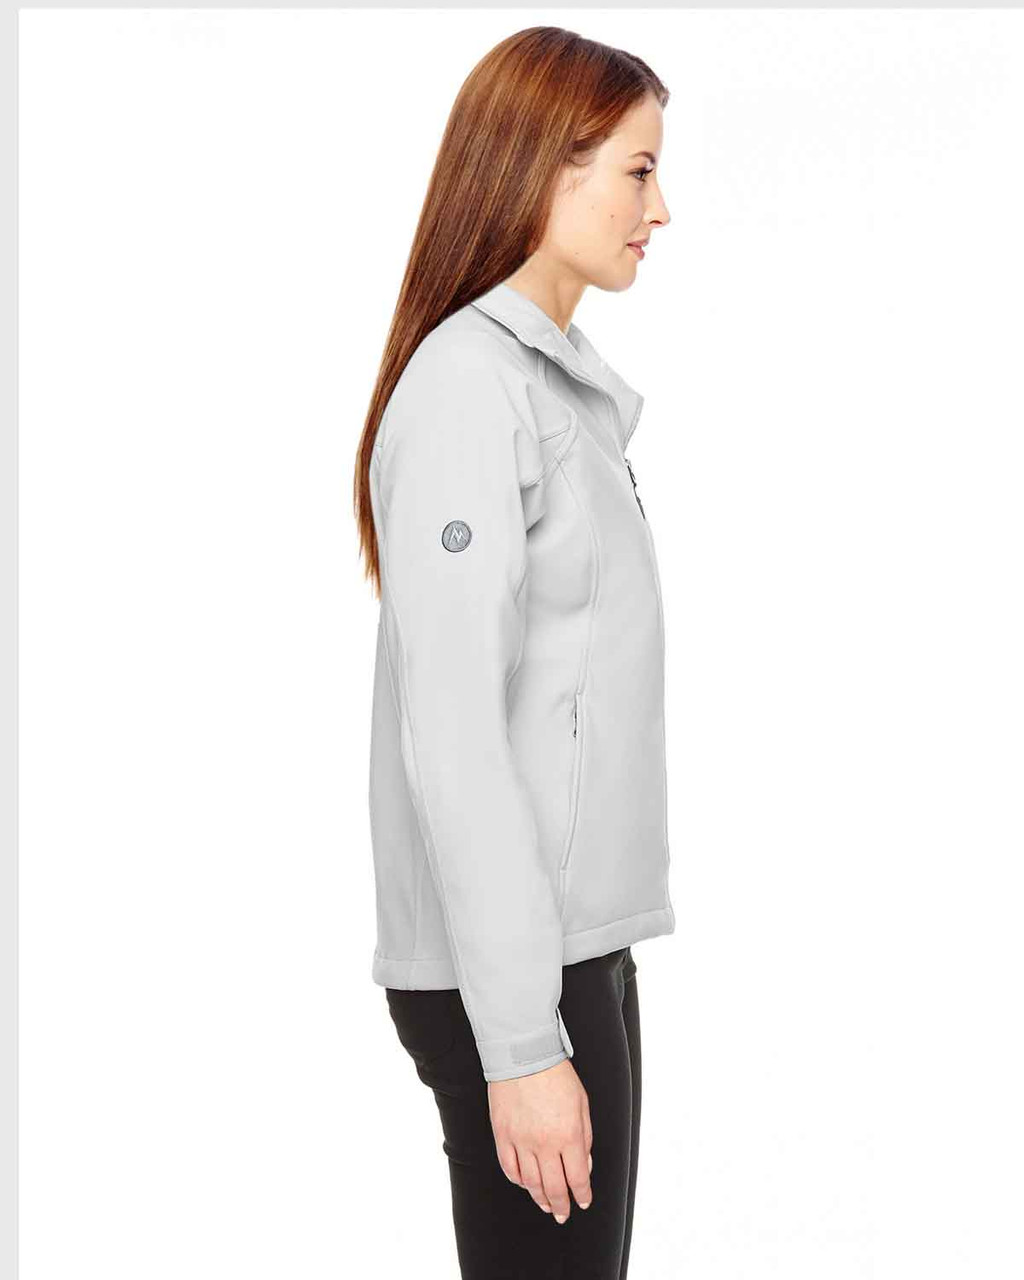 Glacier Grey - Logo, 85000 Marmot Ladies' Gravity Jacket | BlankClothing.ca